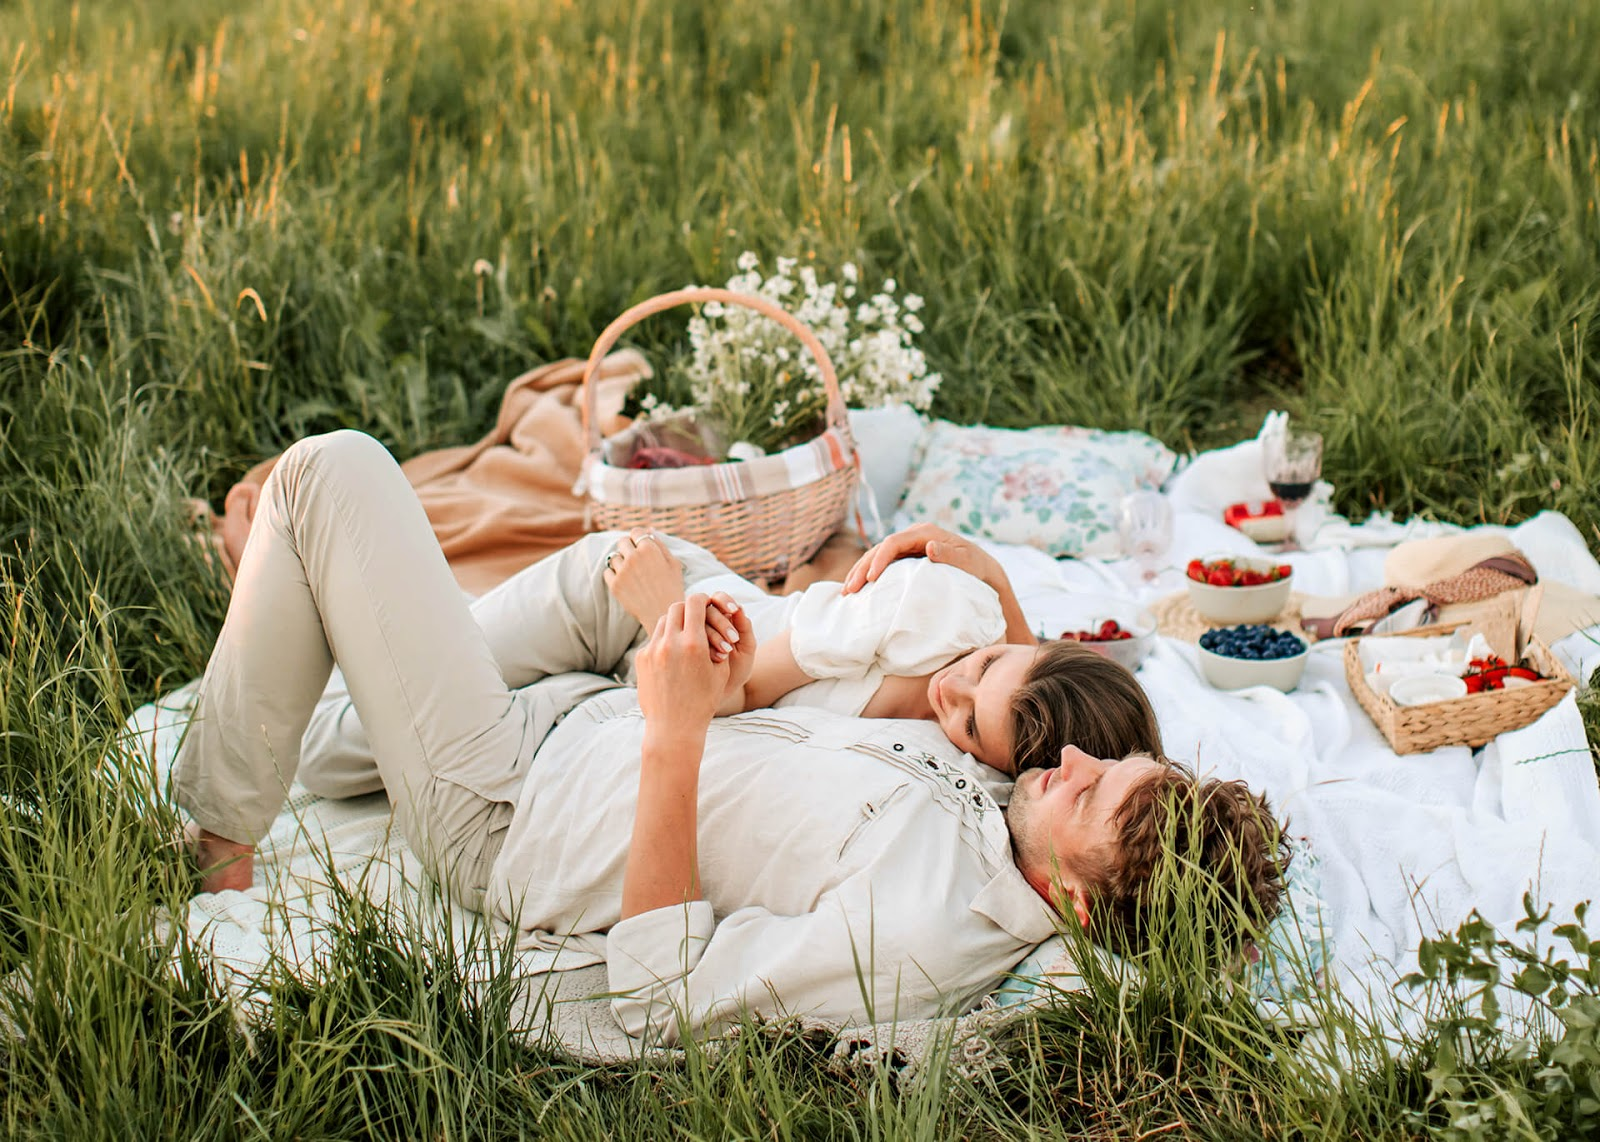 A couple lays on a blanket and looks at the sky while enjoying a picnic together.